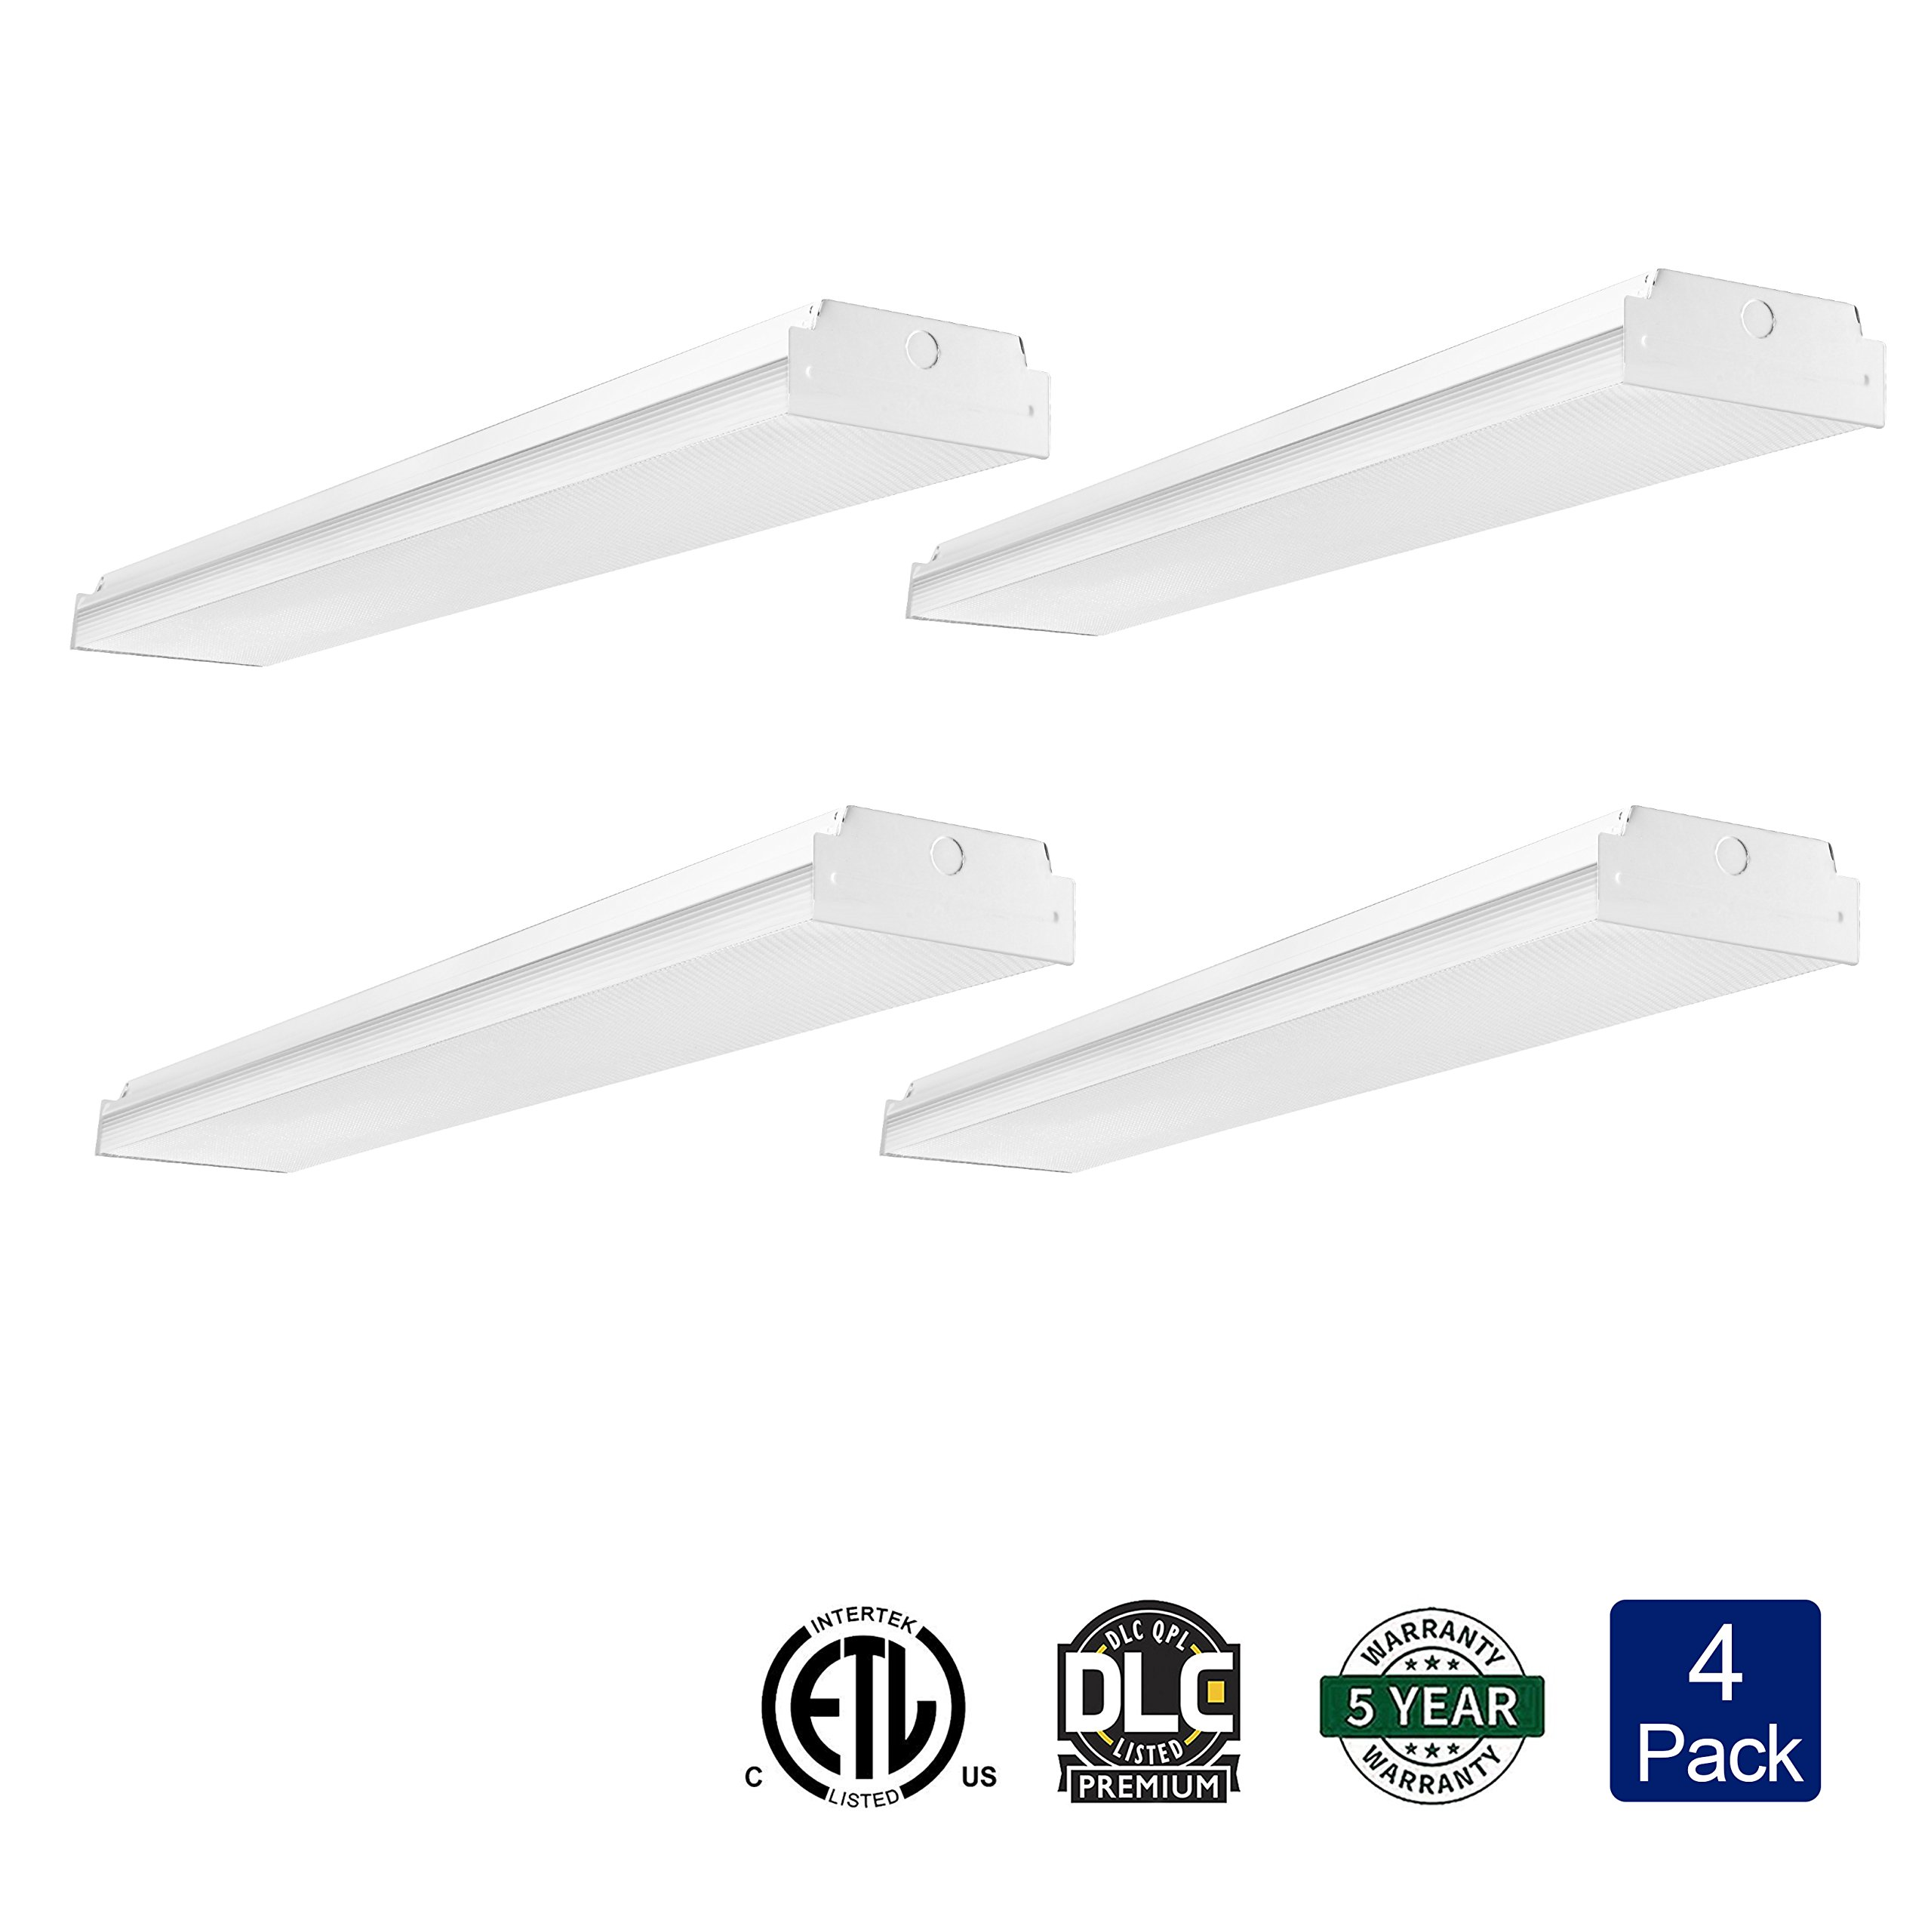 AntLux 4ft LED Garage Shop Lights LED Wraparound Light Fixture - 50W 5500LM - 4000K Neutral White - Integrated Low Profile Linear Flush Mount Ceiling Lighting - 120W Fluorescent Replacement - 4 Pack